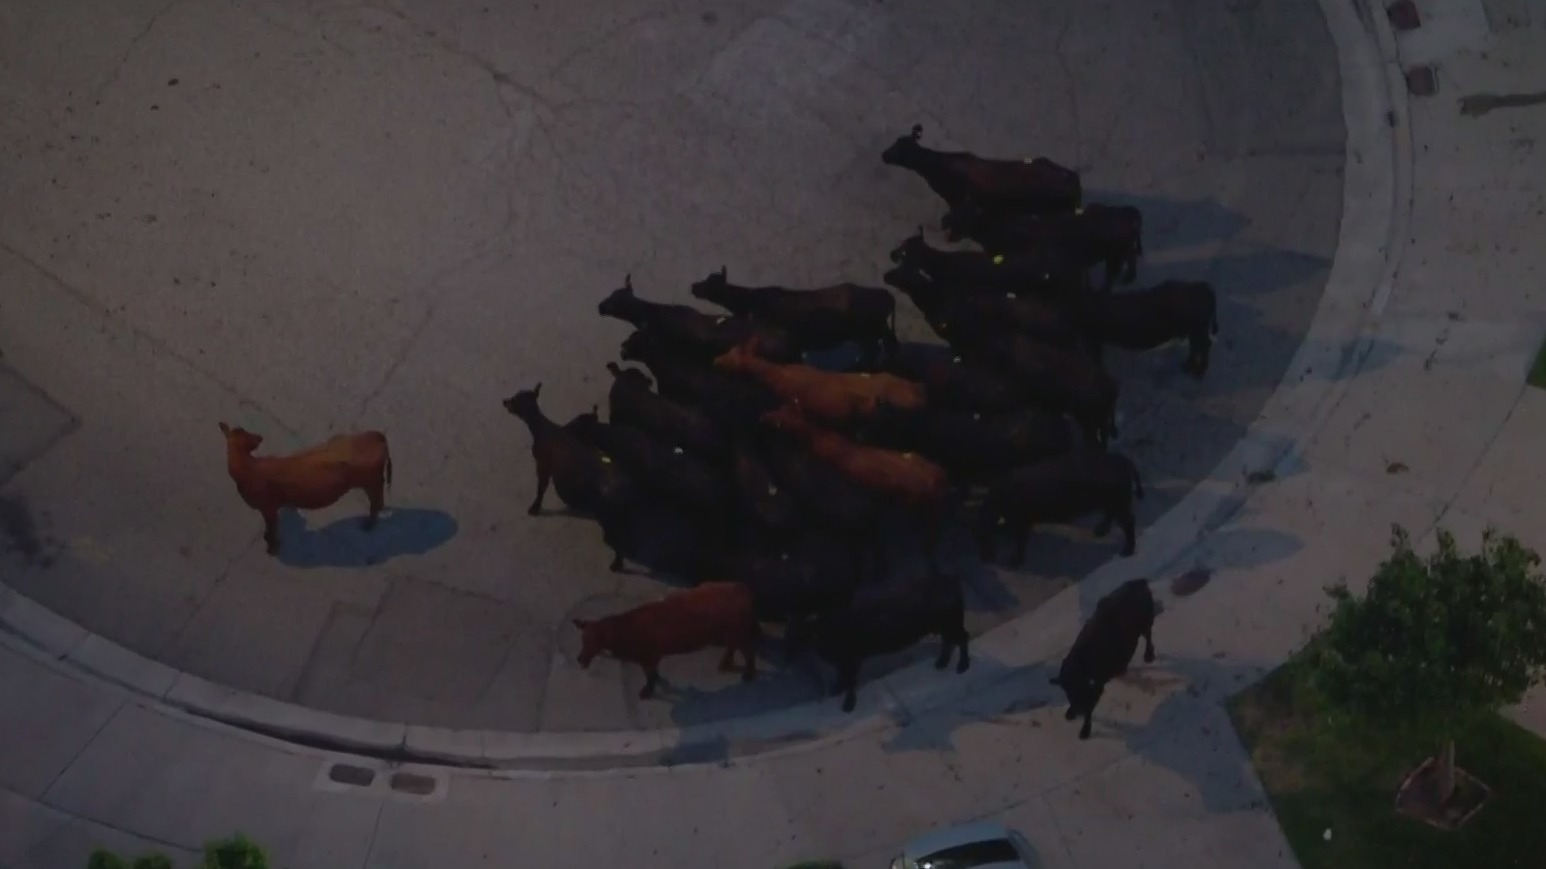 Escaped cows stand in a Pico Rivera neighborhood on June 22, 2021. (KTLA)